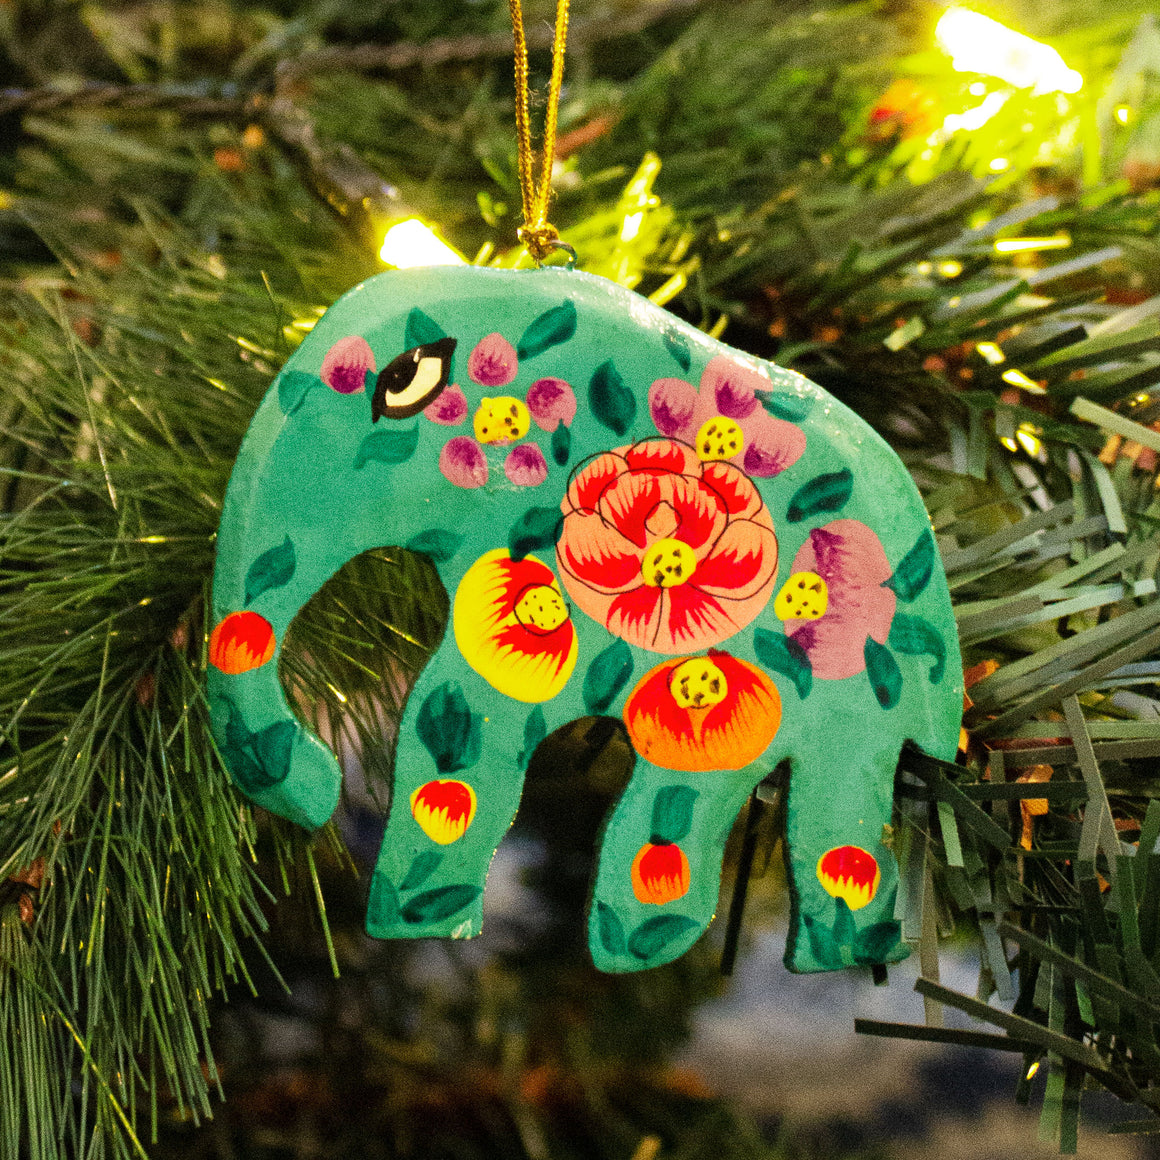 Indian Hand Painted Kashmir Elephant Decoration 'Teal Floral'